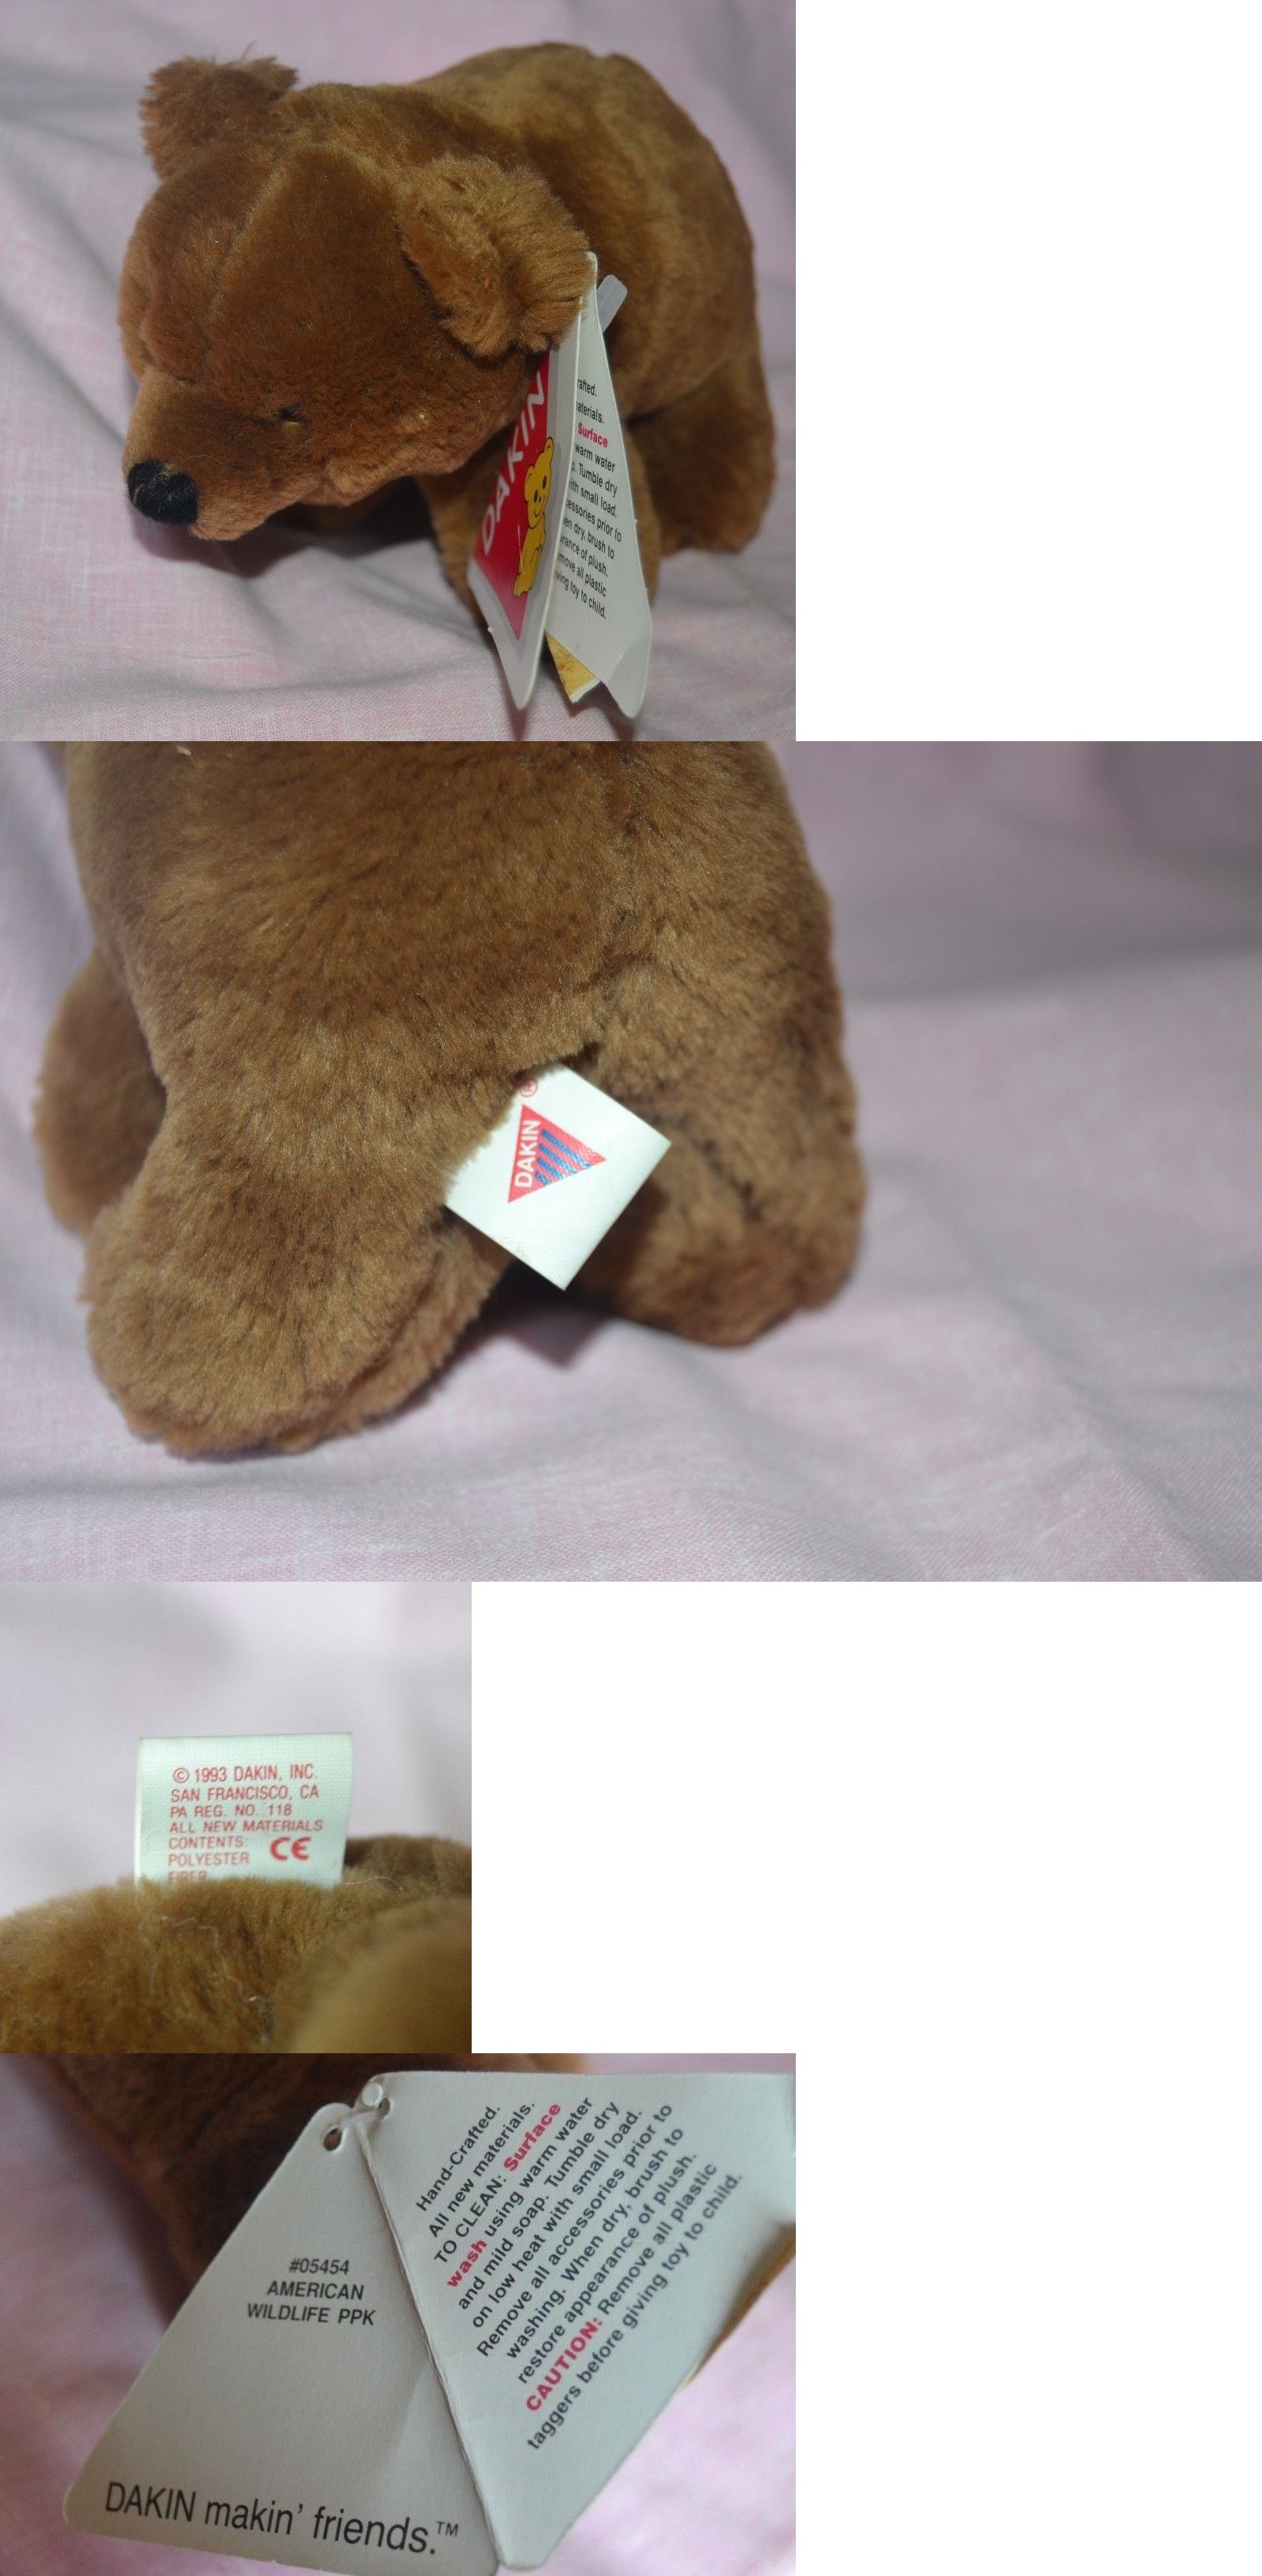 Can You Wash Stuffed Animals That Say Surface Wash Only Dakin 63654 Dakin American Wildlife 05454 Brown Bear 6 Plush Toy Stuffed Animal 1993 W Tag Buy It Now Only 19 99 On Ebay Dak Pet Toys Plush Toy Animals